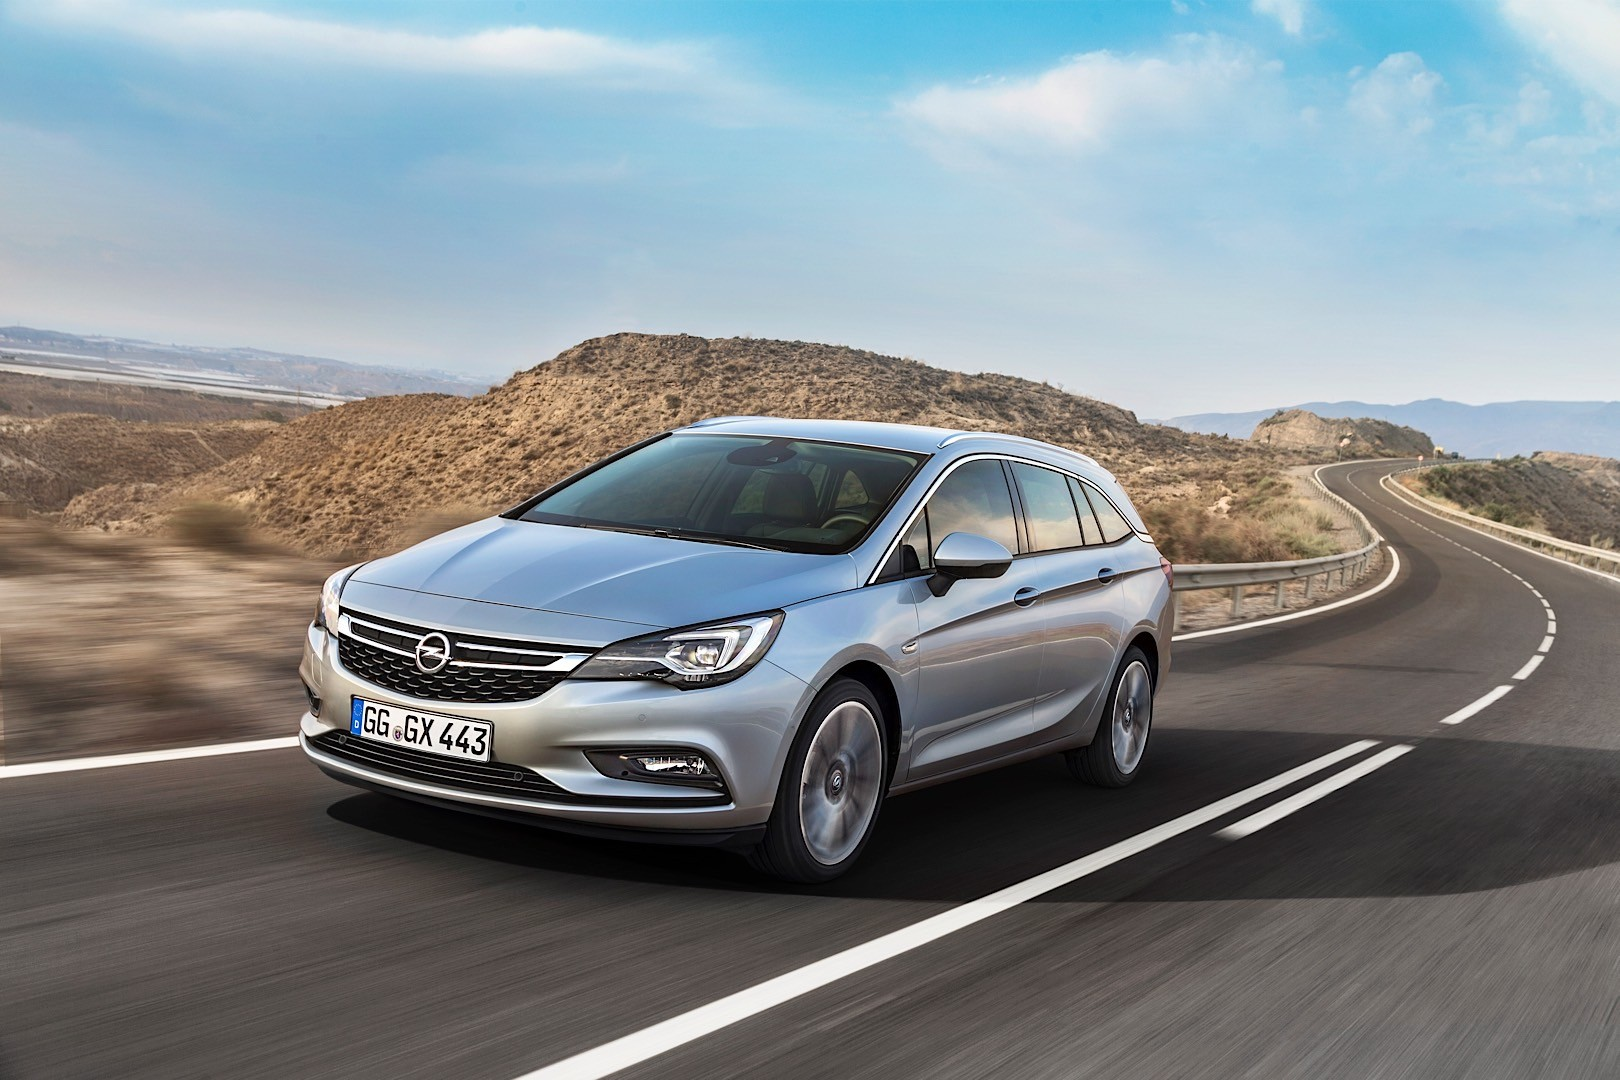 opel unveils the 2015 astra sports tourer comes with up to 200 horsepower autoevolution. Black Bedroom Furniture Sets. Home Design Ideas